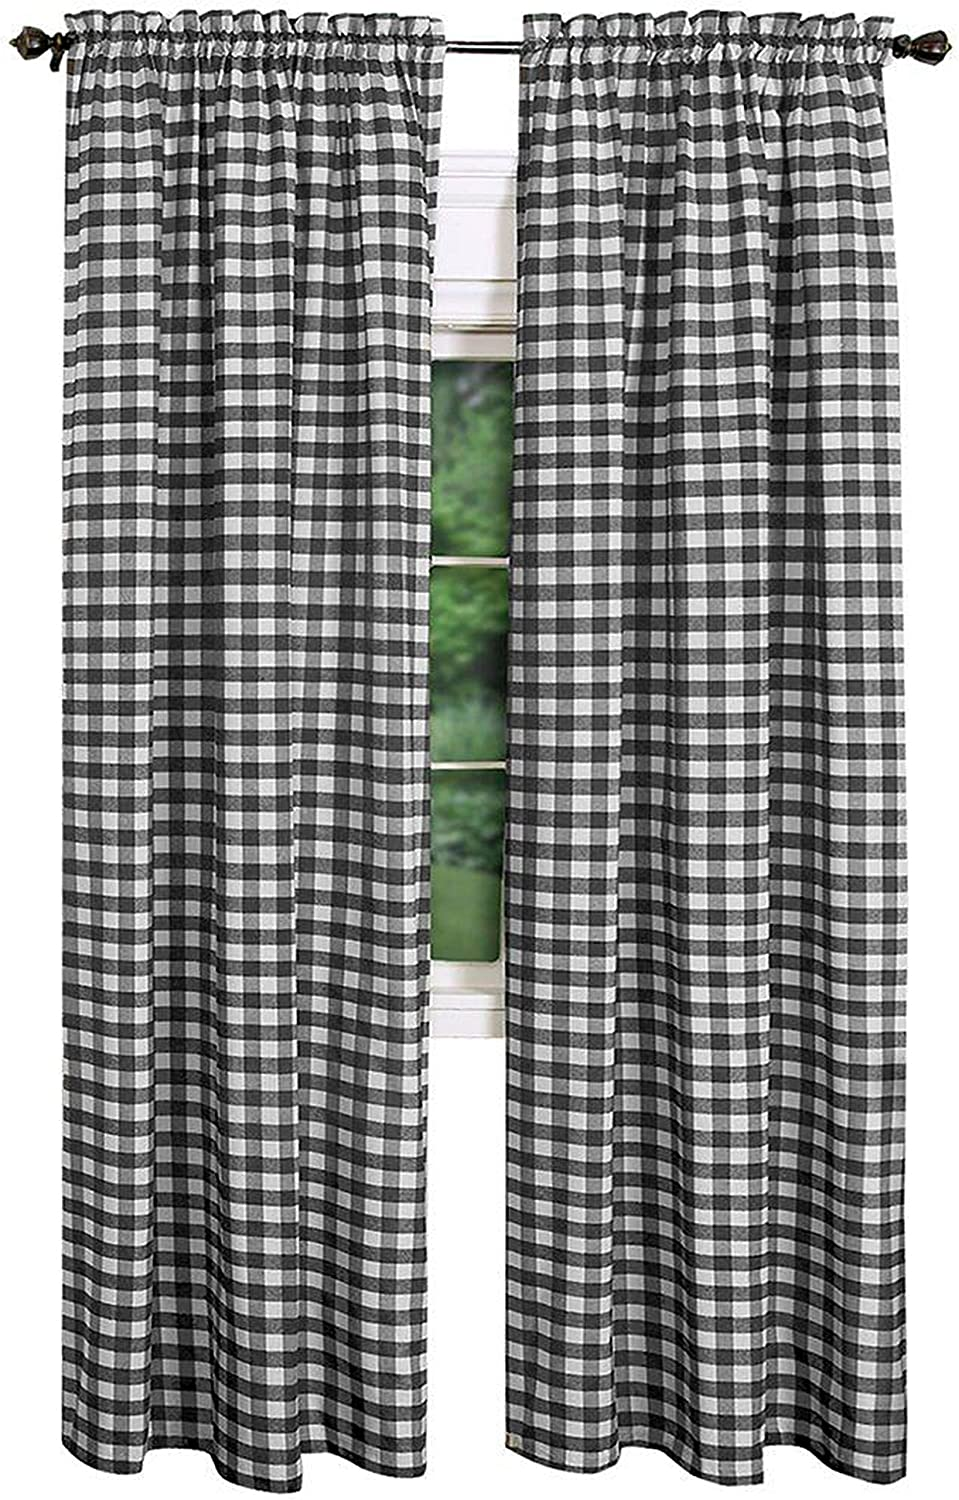 AK-Trading - Set of 2 Pcs. - Buffalo Check Plaid Gingham Window Curtain Treatments 100% Polyester Checker Plaid Window Curtain Panel - Made in USA - 54 inches x 72 inches - Black